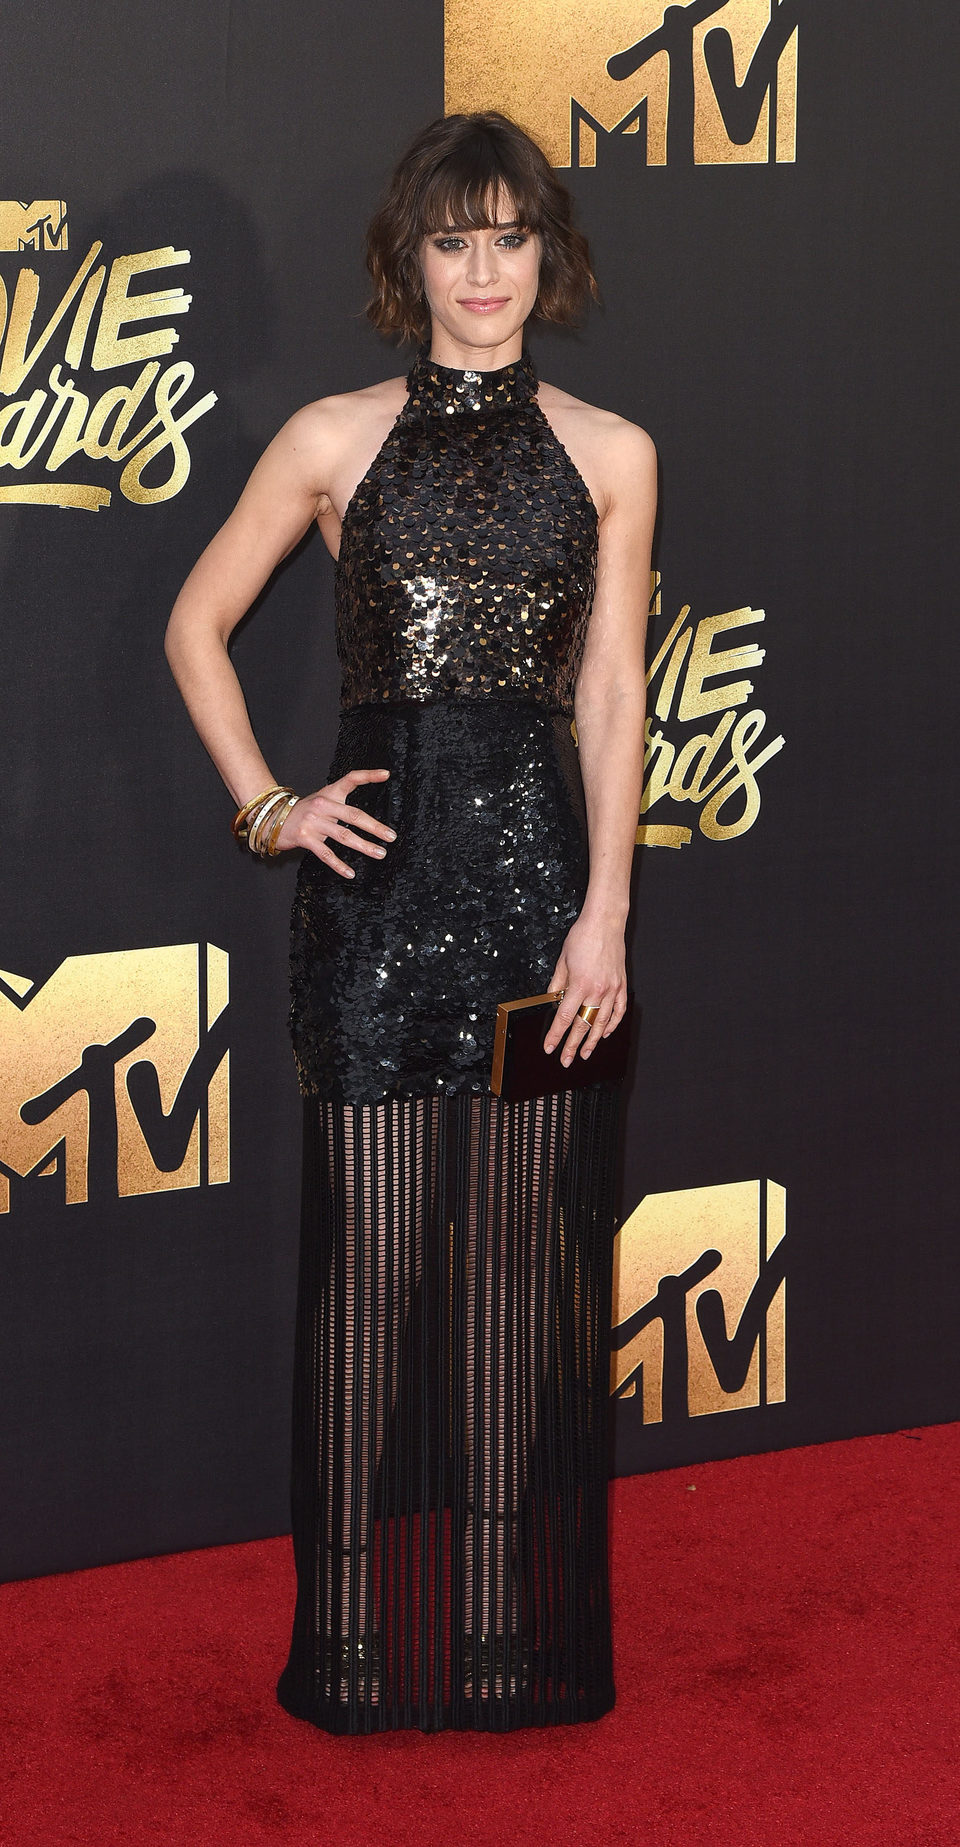 Lizzy Caplan en la alfombra roja de los MTV Movie Awards 2016